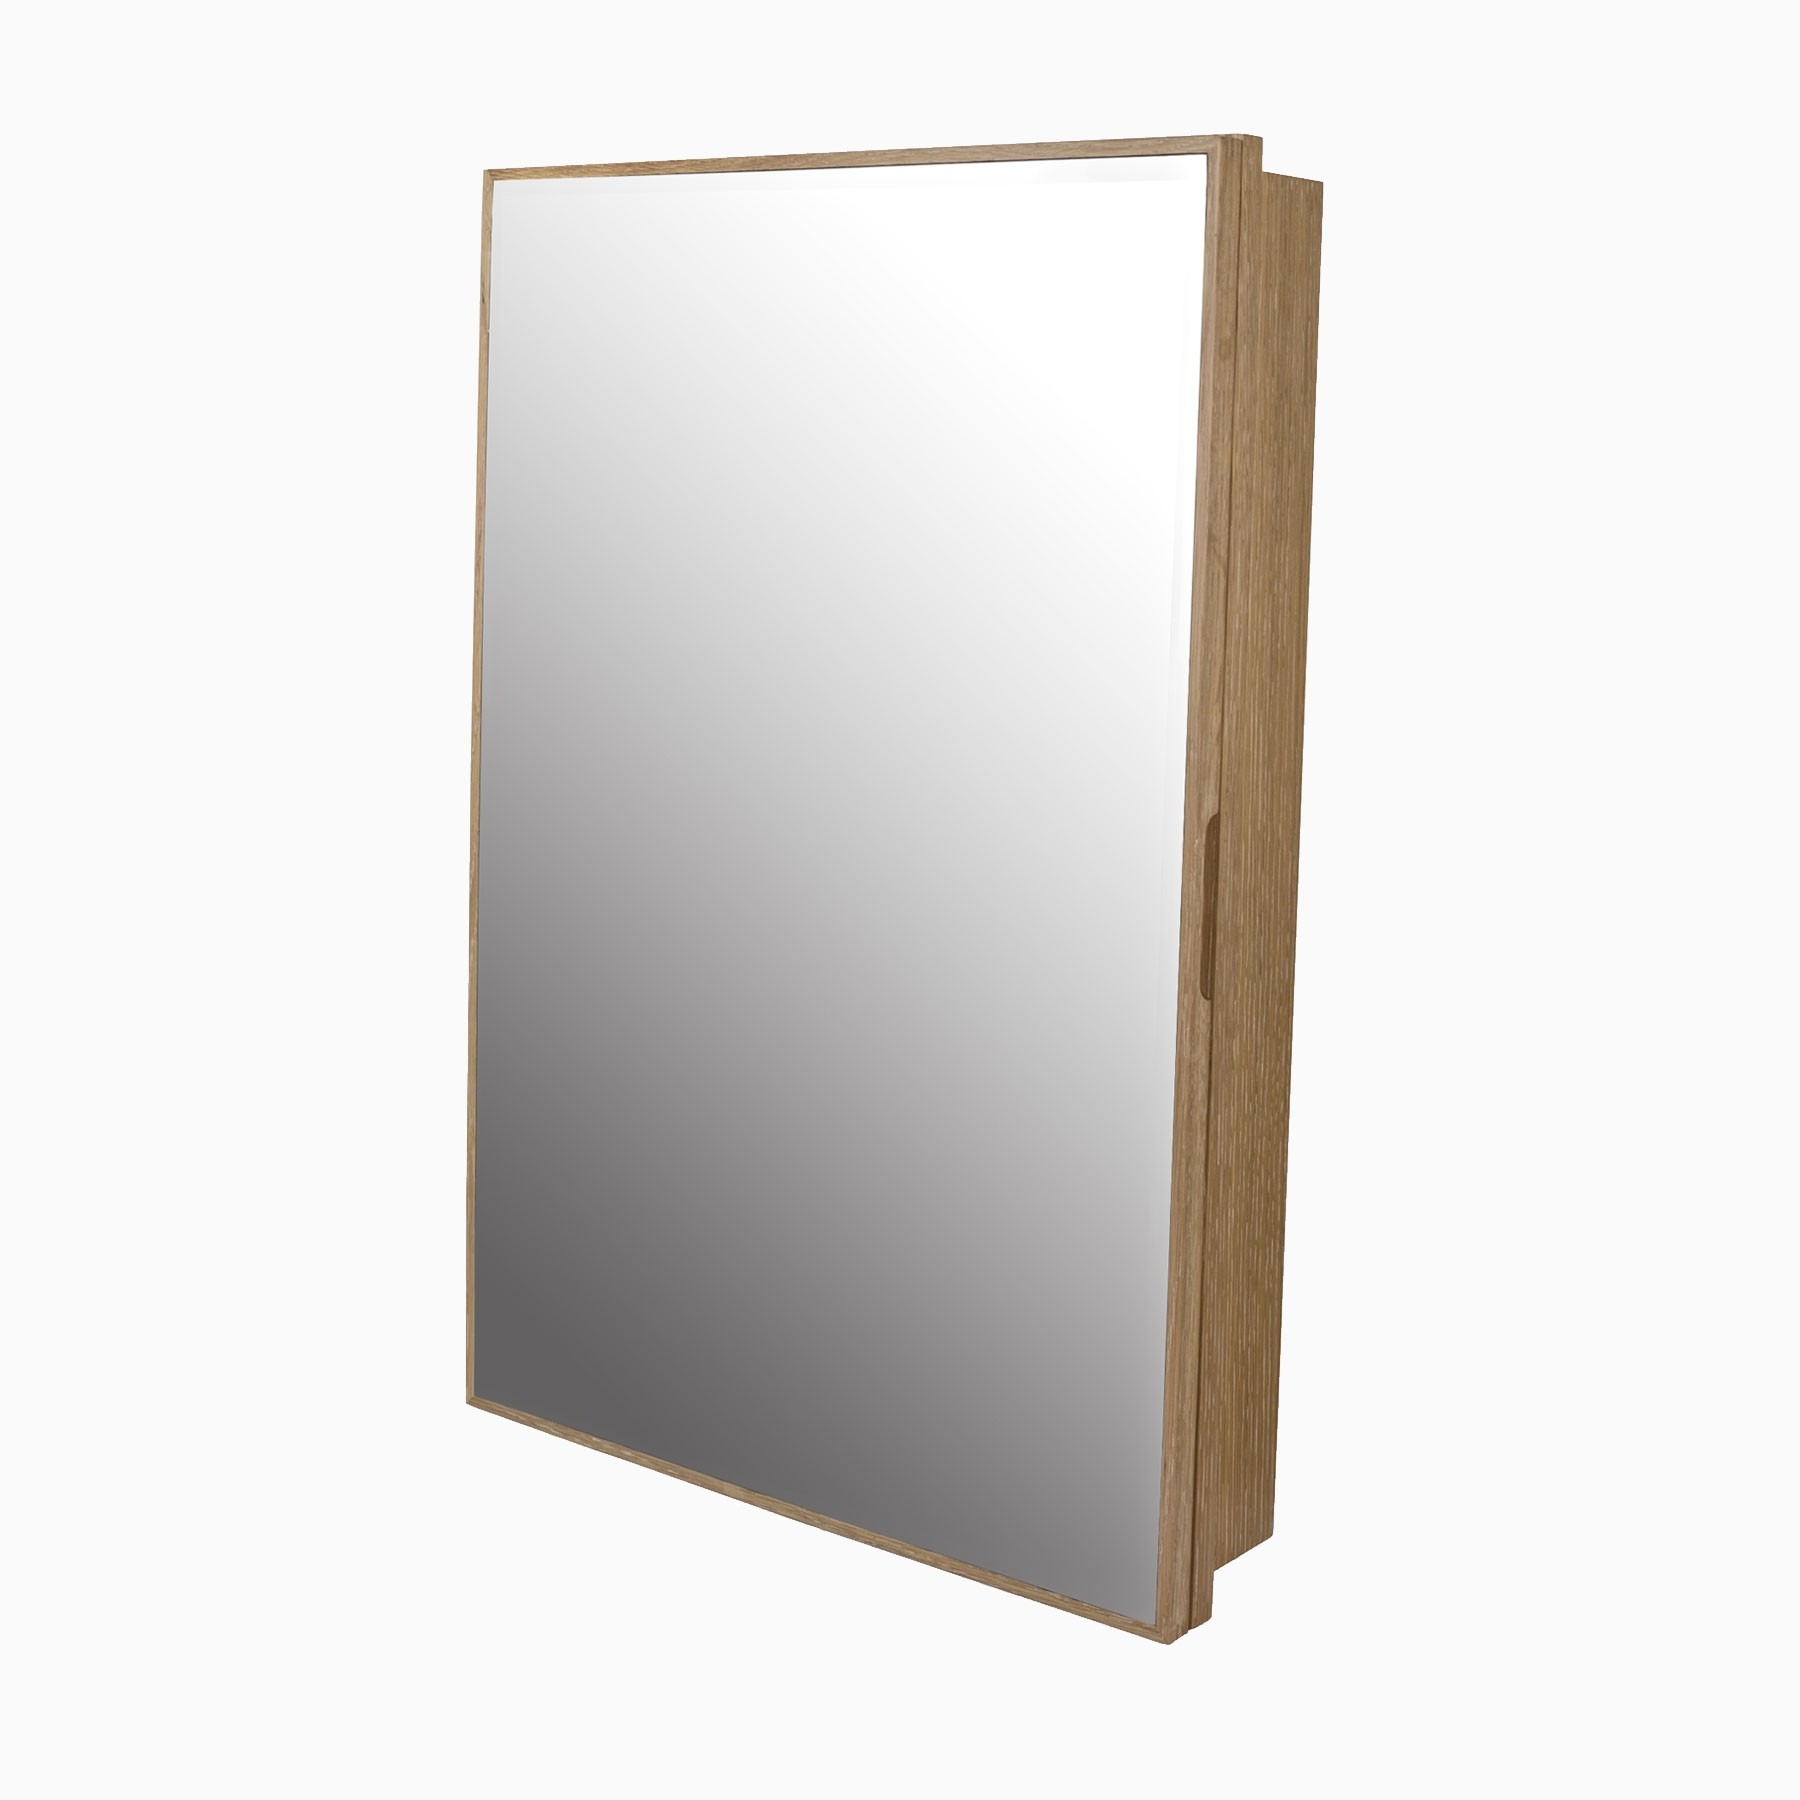 Peter 23 W X 33 H Wood Framed Medicine Cabinet With Beveled Mirror And Shelf Weathered Natural